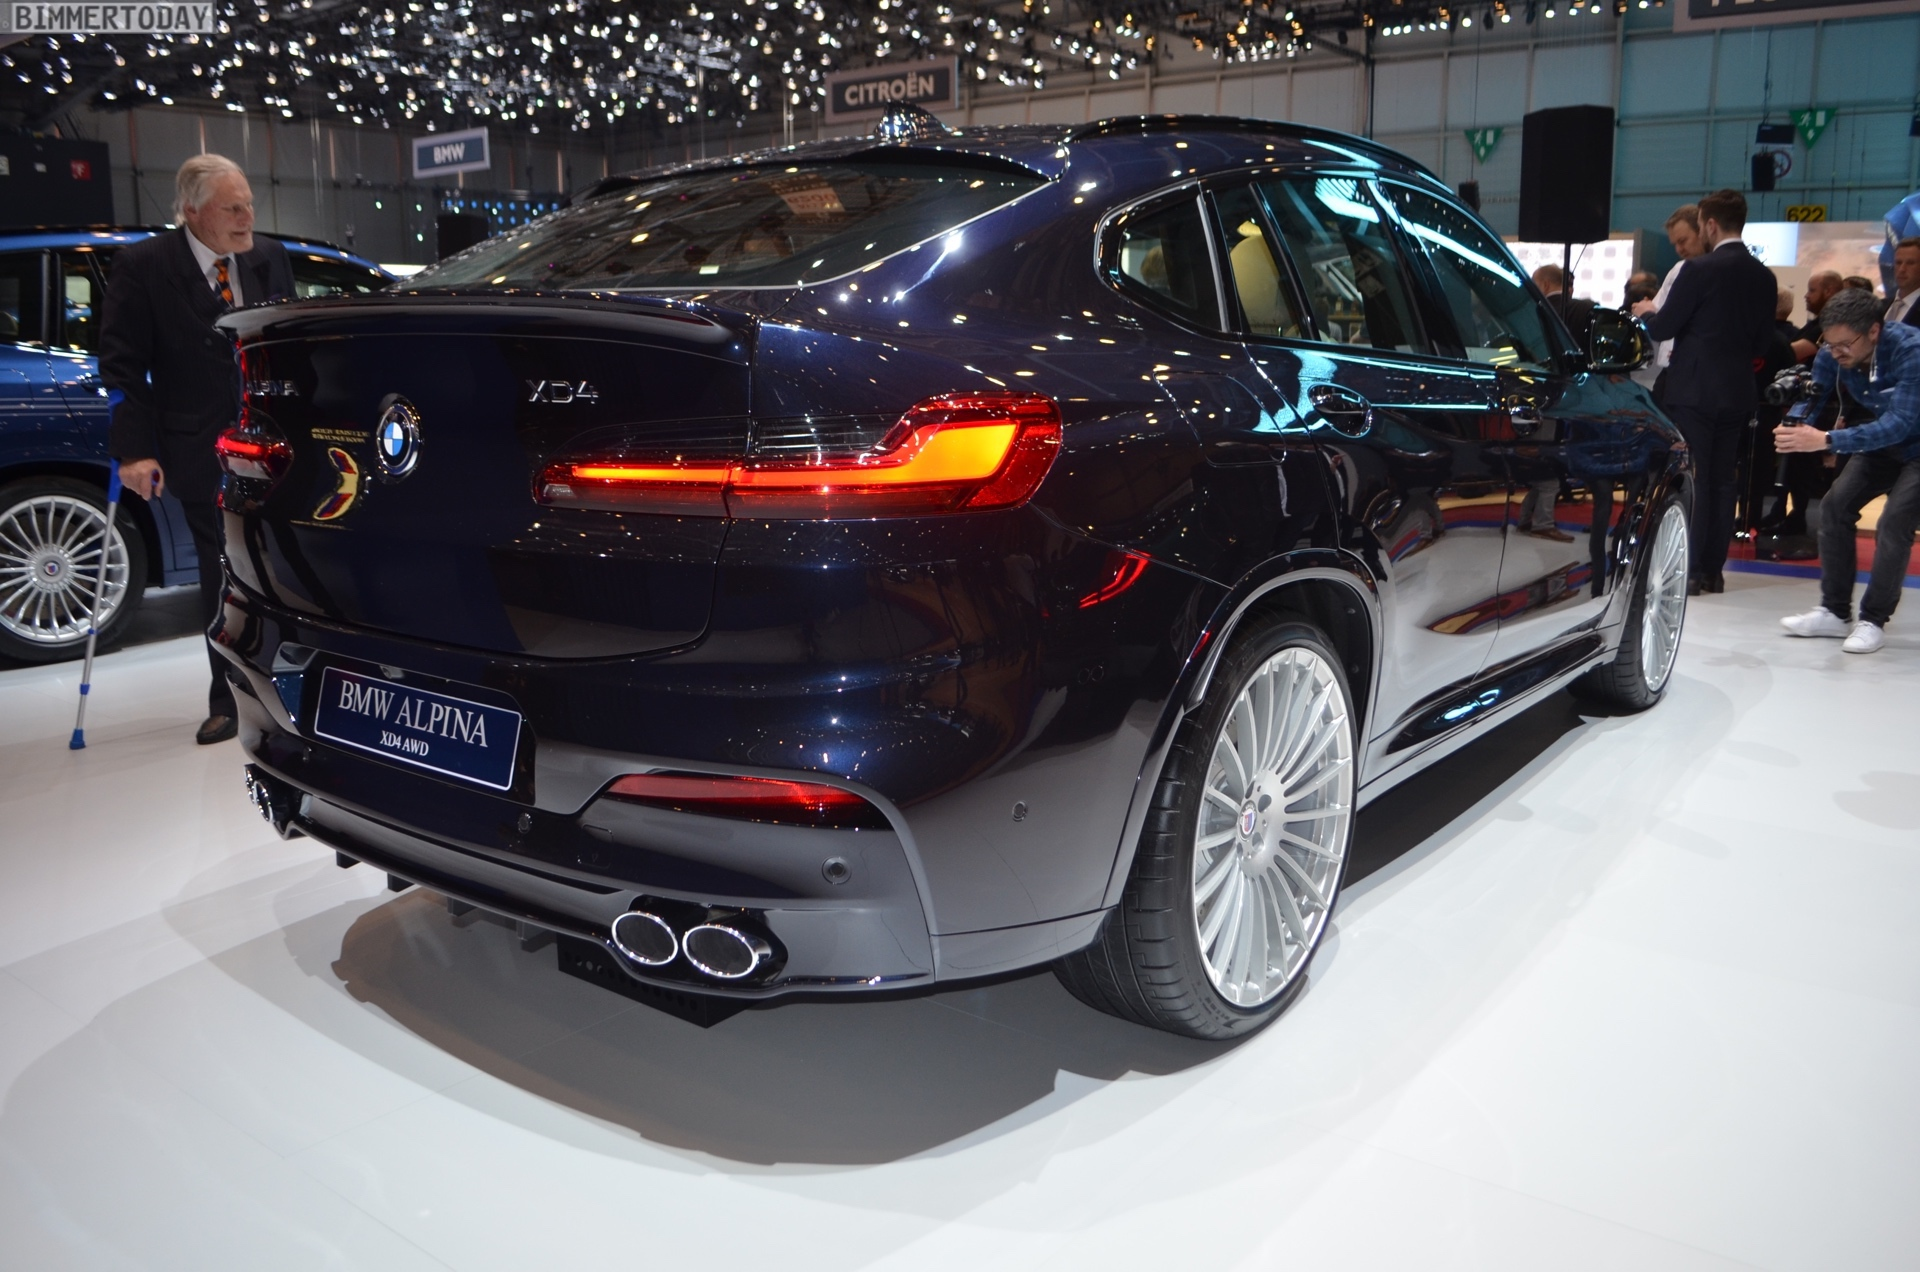 2018 Geneva Motor Show: First live photos of the G02 BMW ALPINA XD4